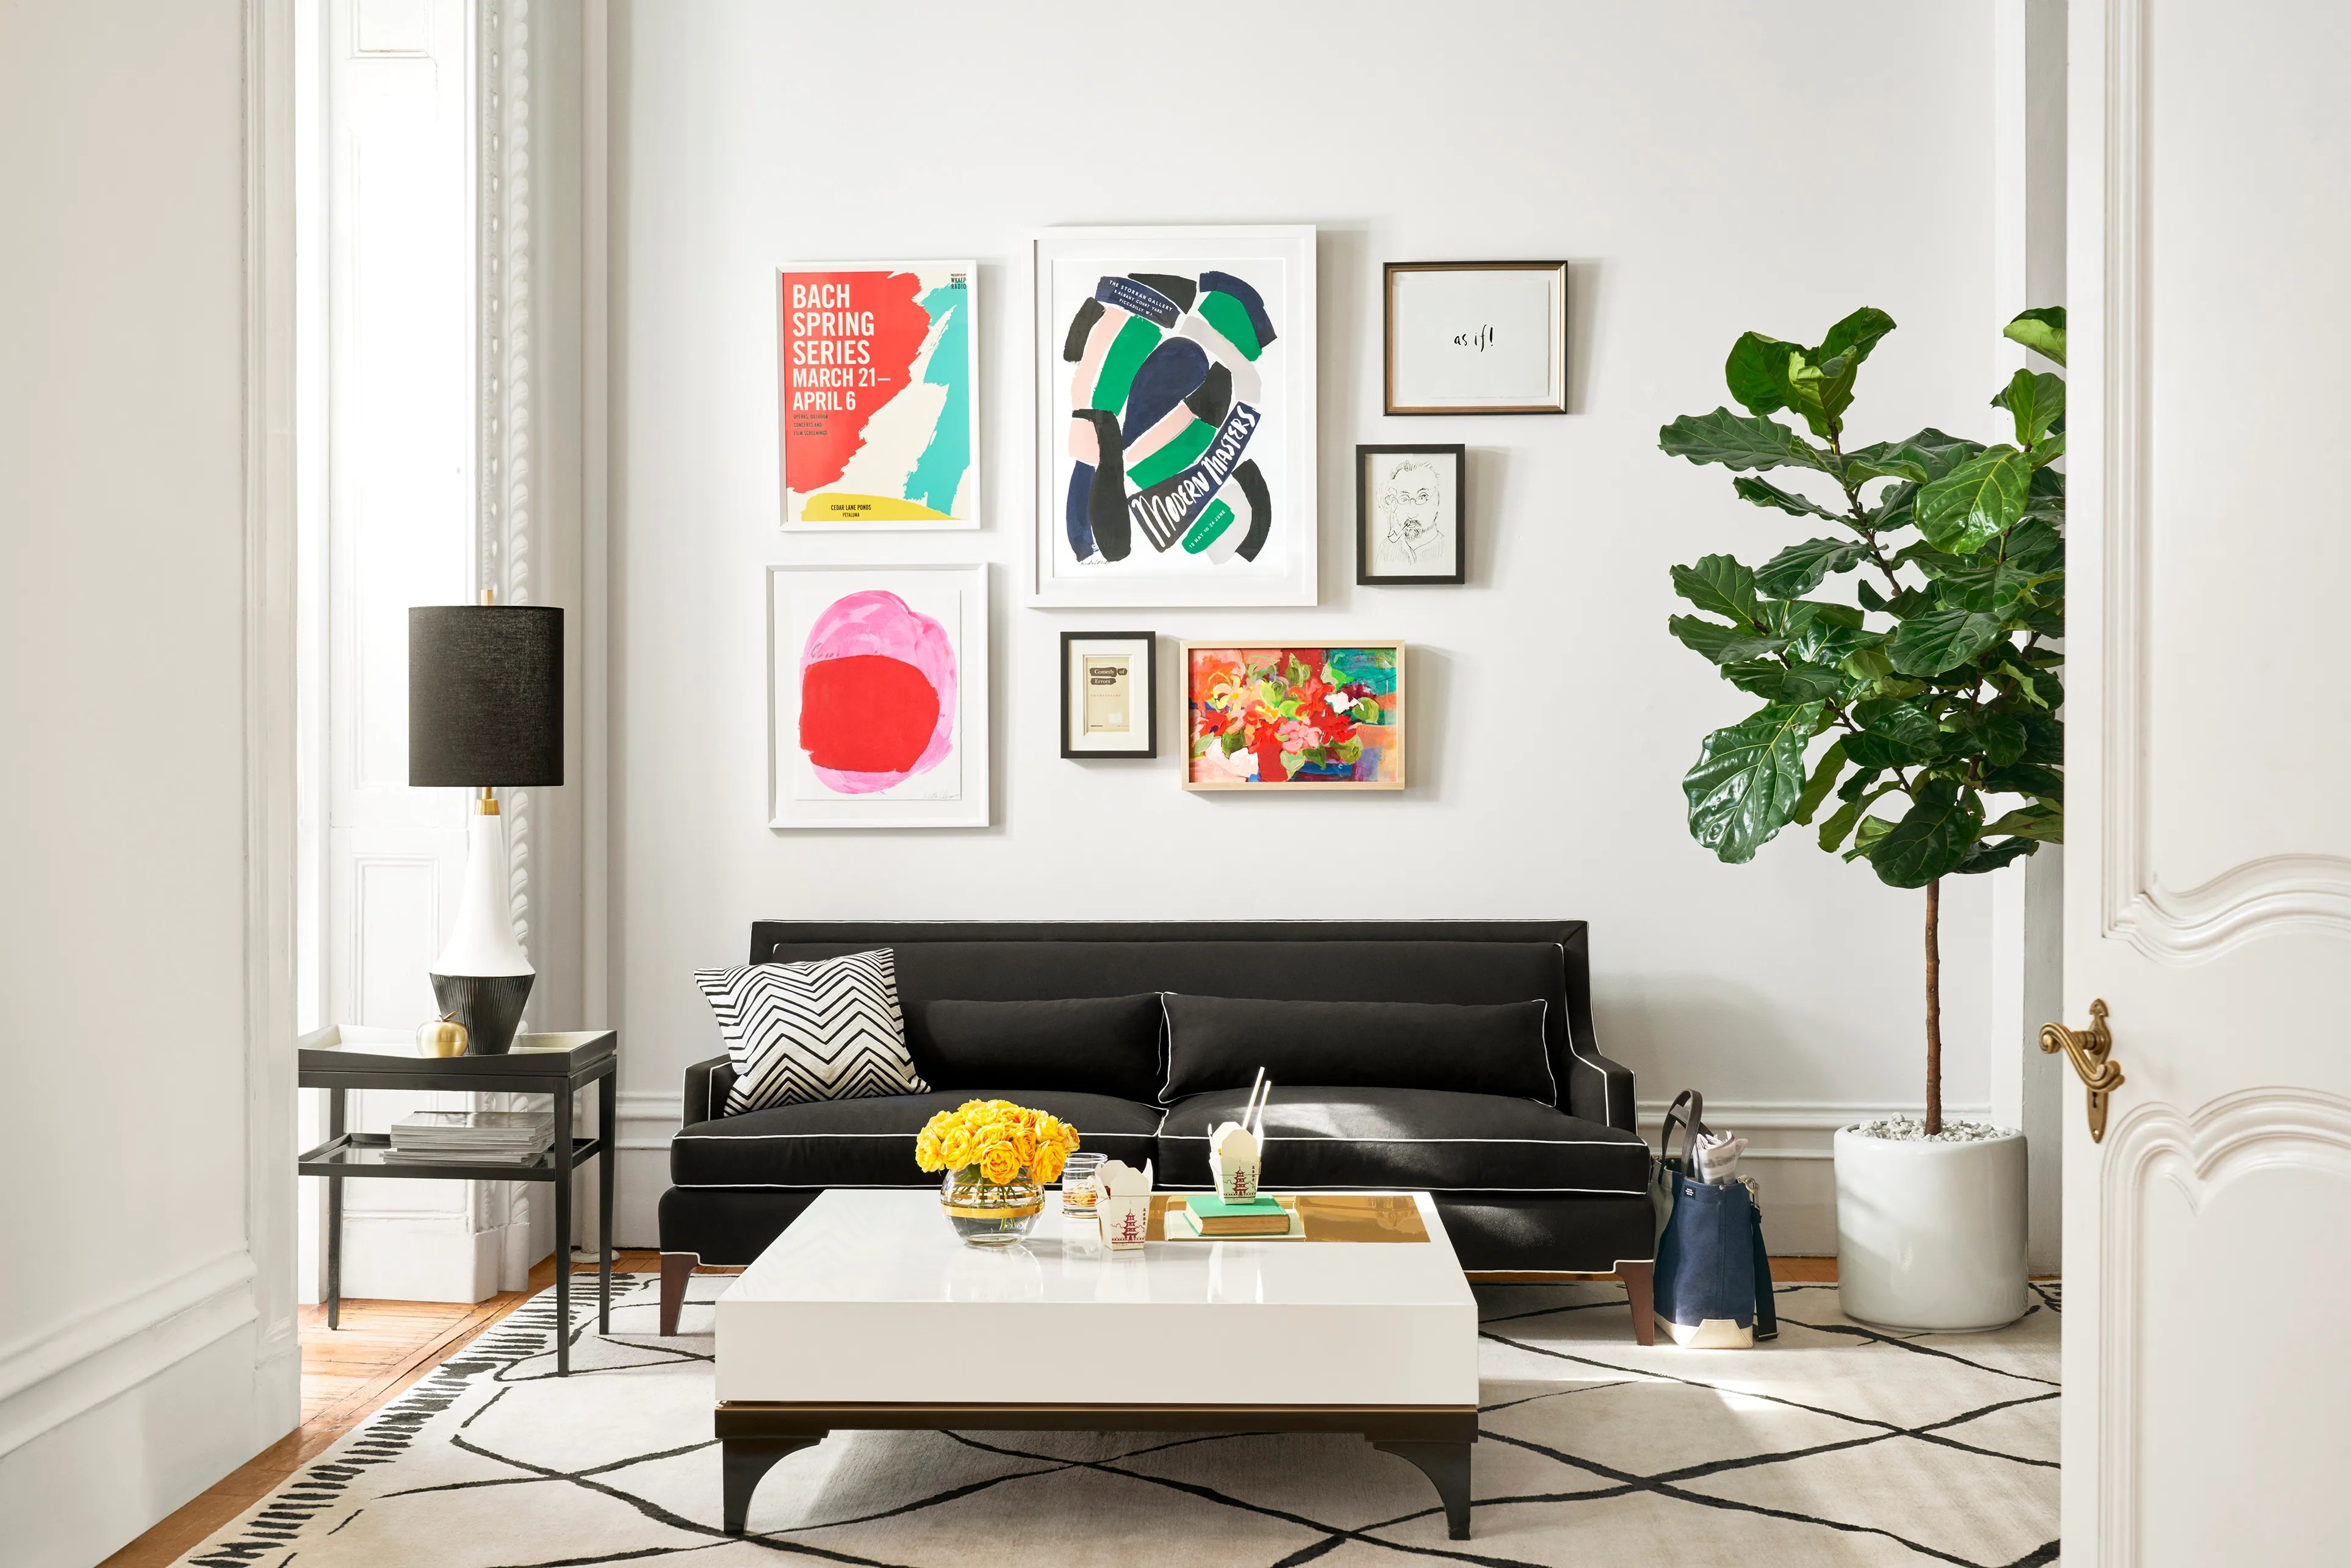 How to Choose the Right Art for a Gallery Wall